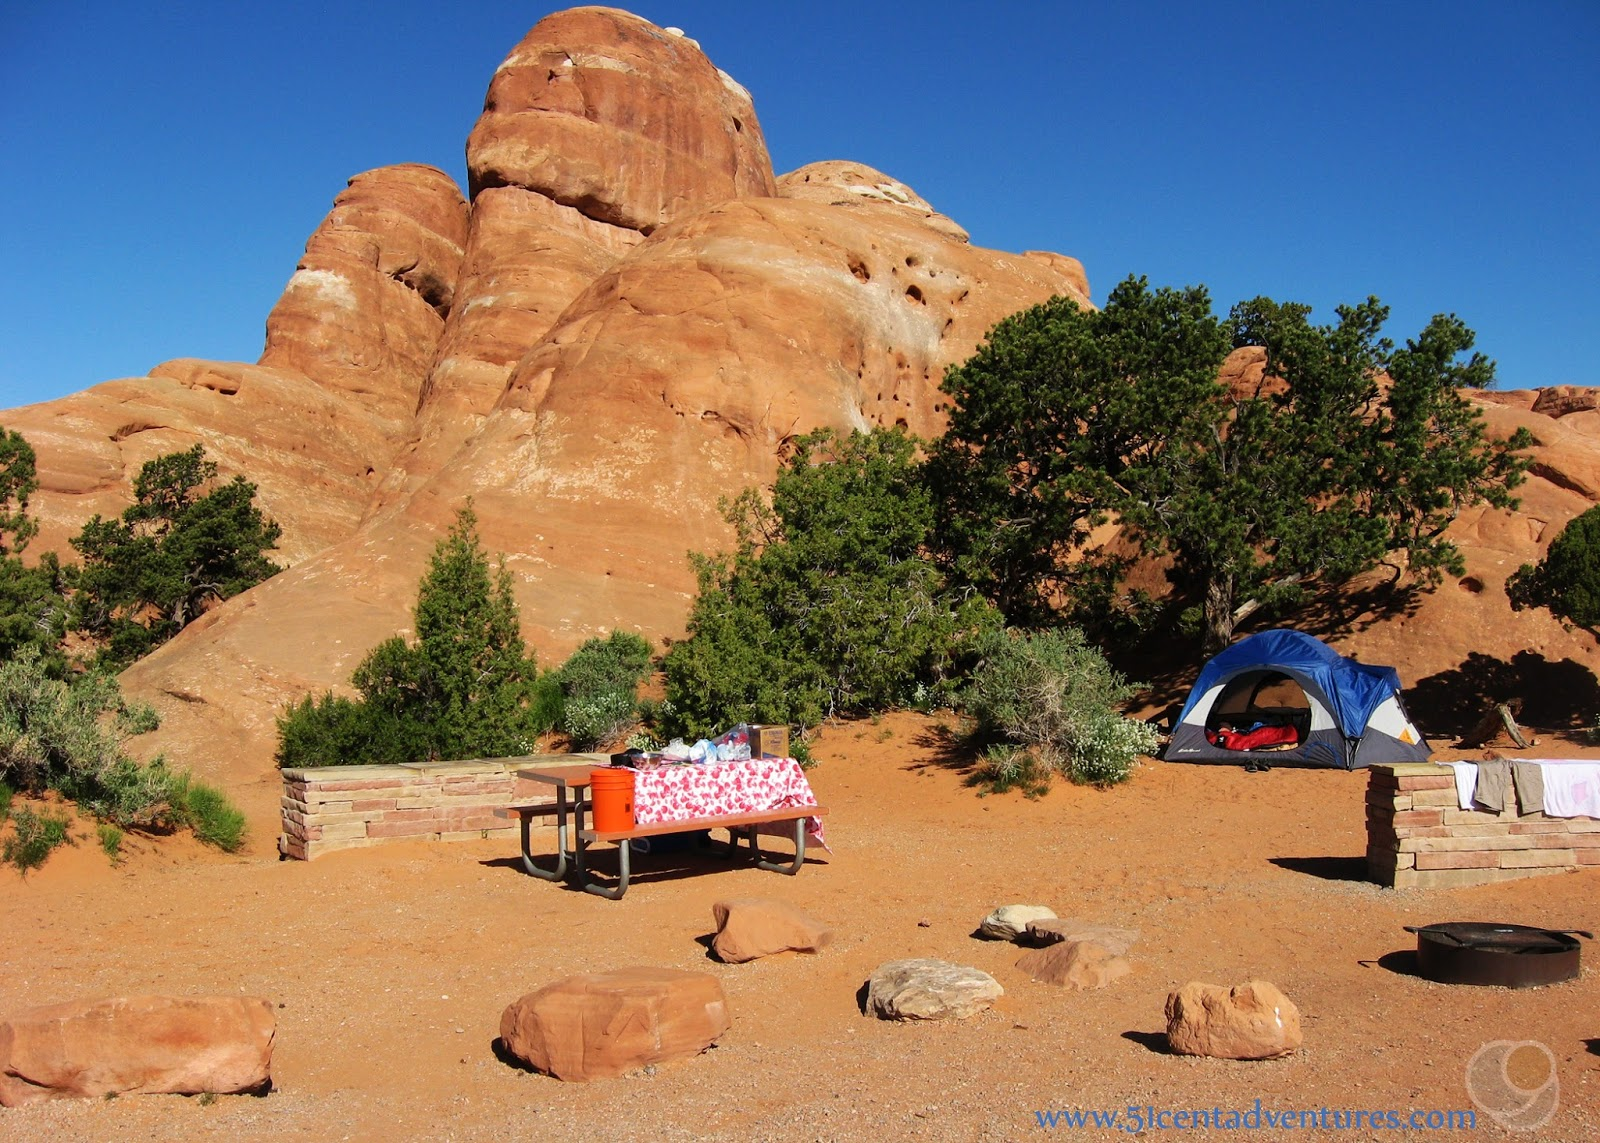 51 cent adventures arches national park highlights